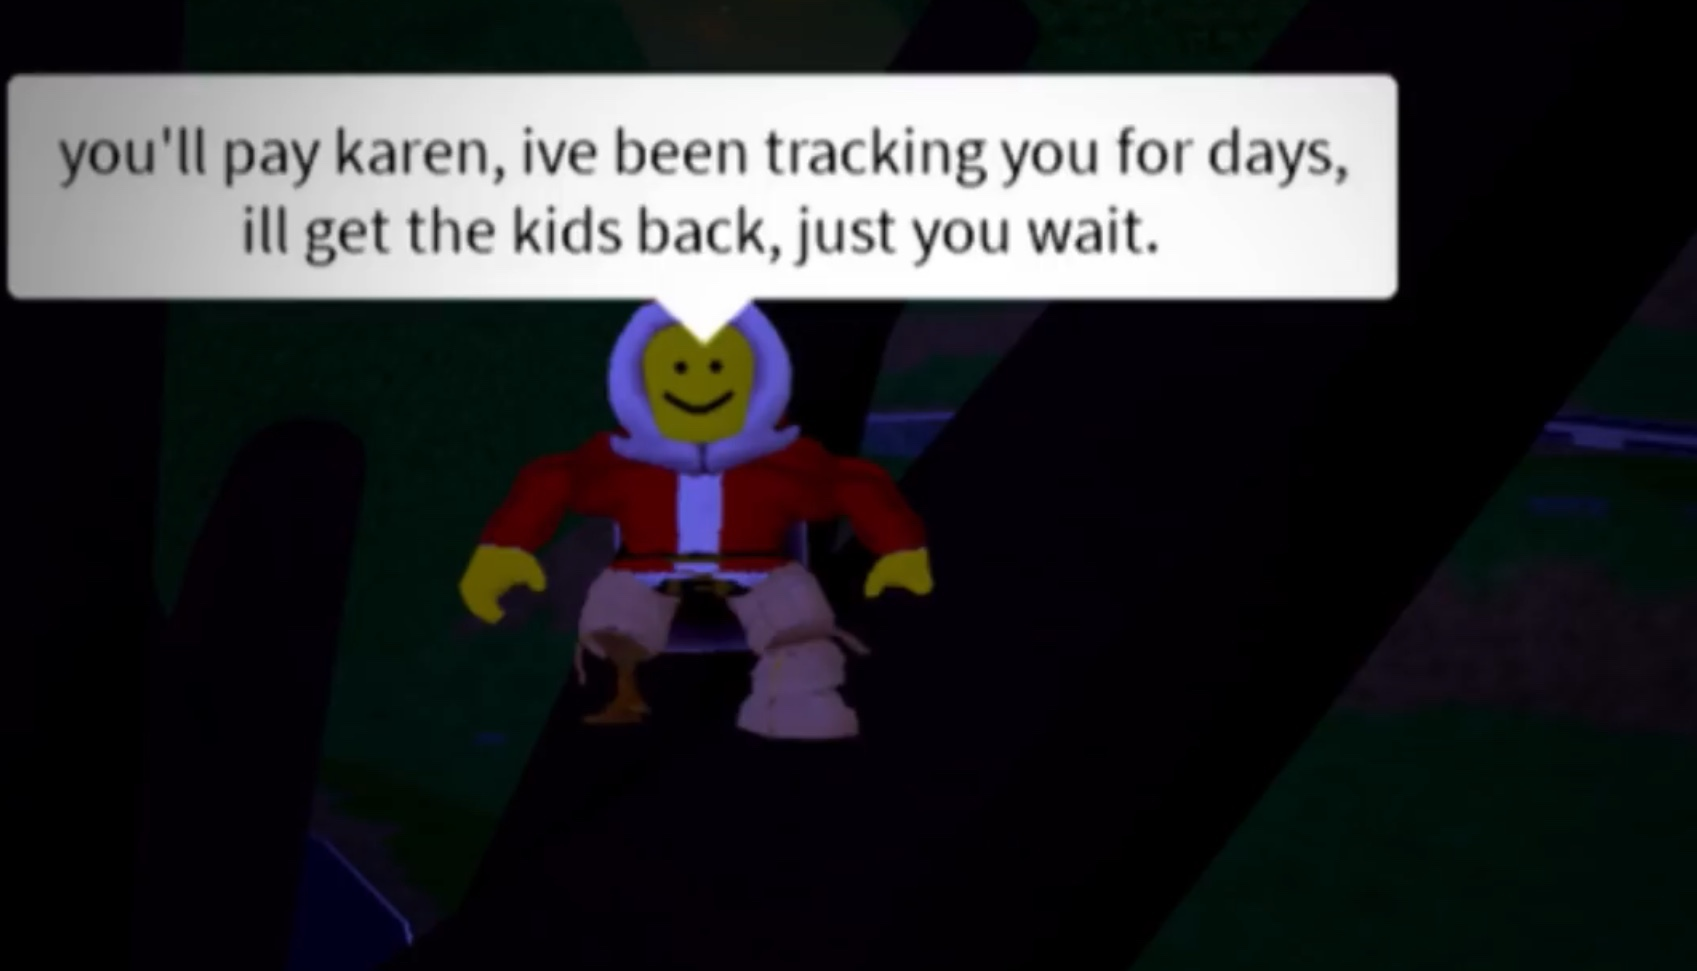 Dankest Memes Funny Roblox Memes 100 Funny Roblox Memes Based On The Smiley Robot Geeks On Coffee